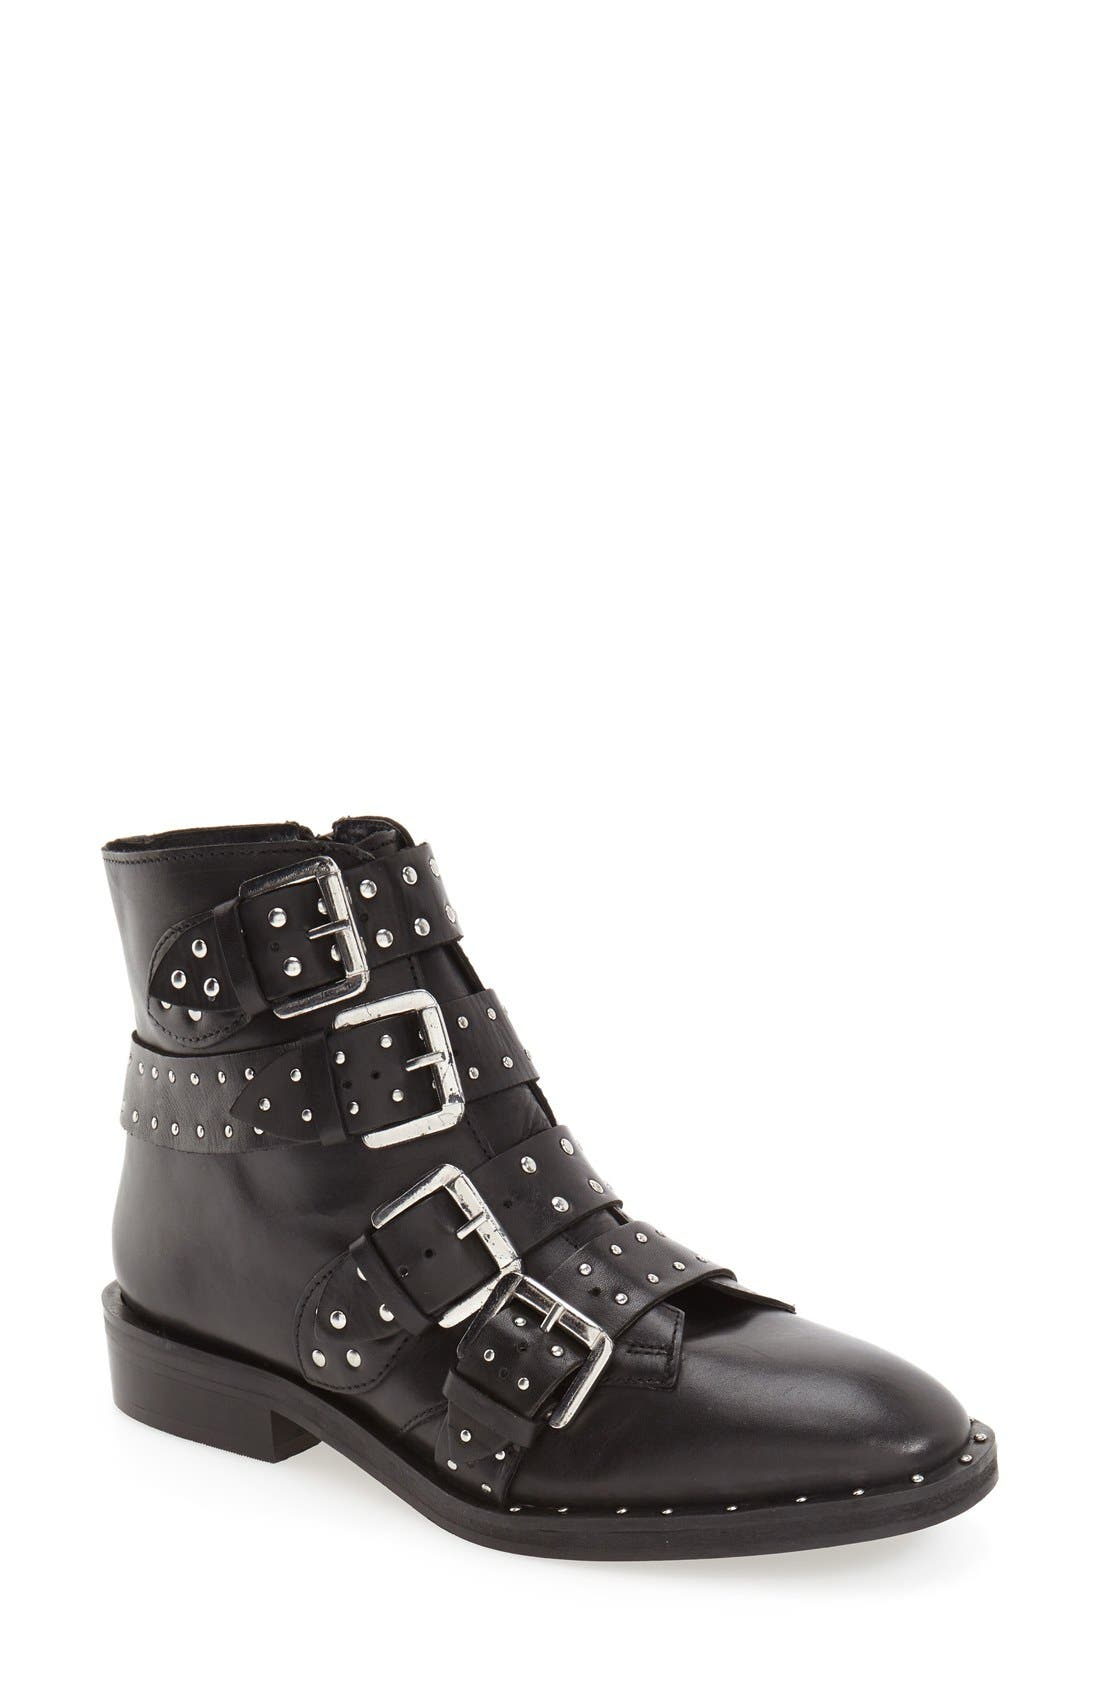 TOPSHOP, 'Amy' Studded Buckle Bootie, Main thumbnail 1, color, 001